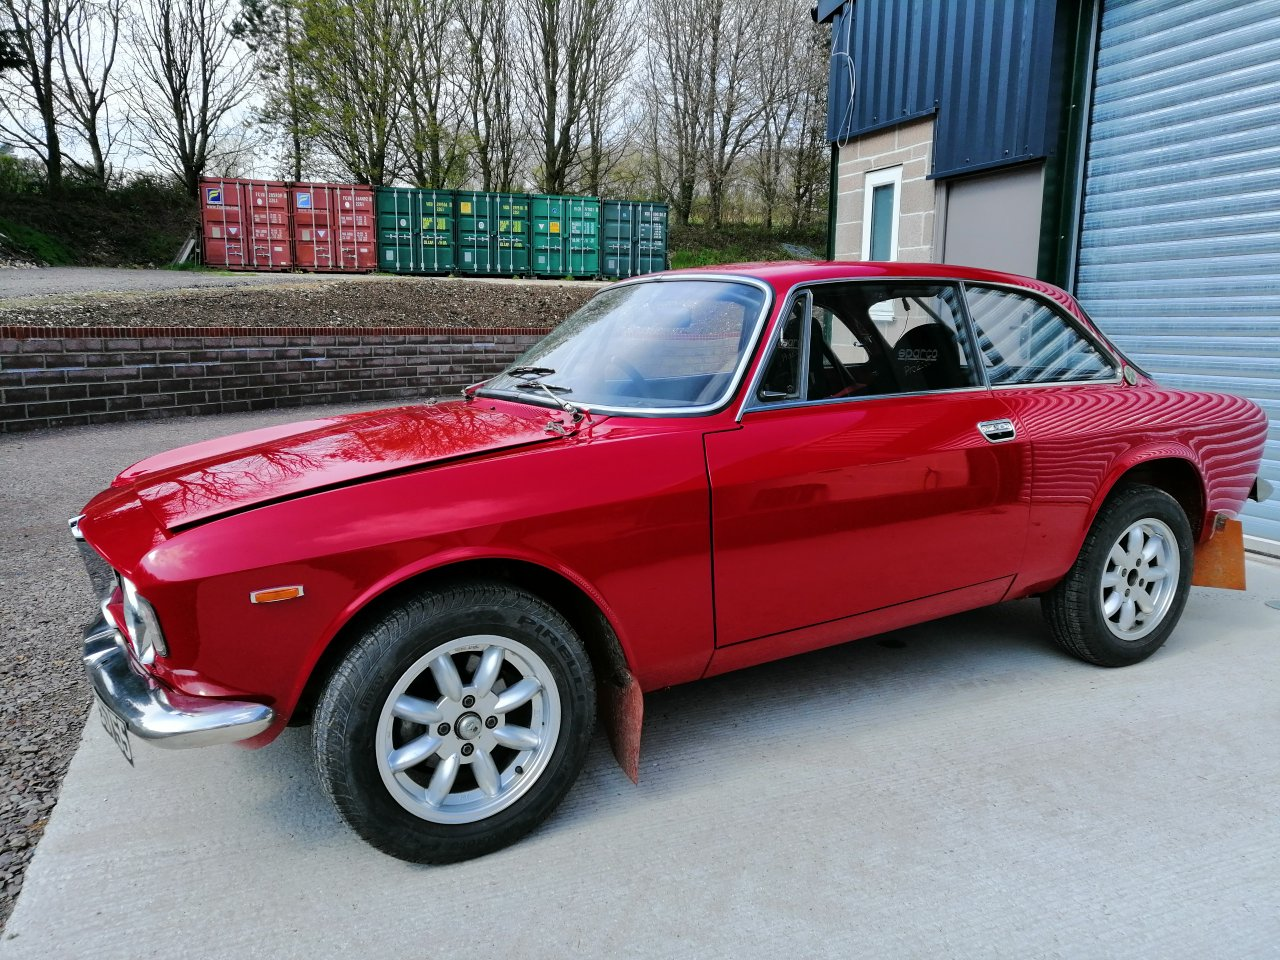 1966 Giulia Sprint GTV endurance rally car For Sale (picture 2 of 6)